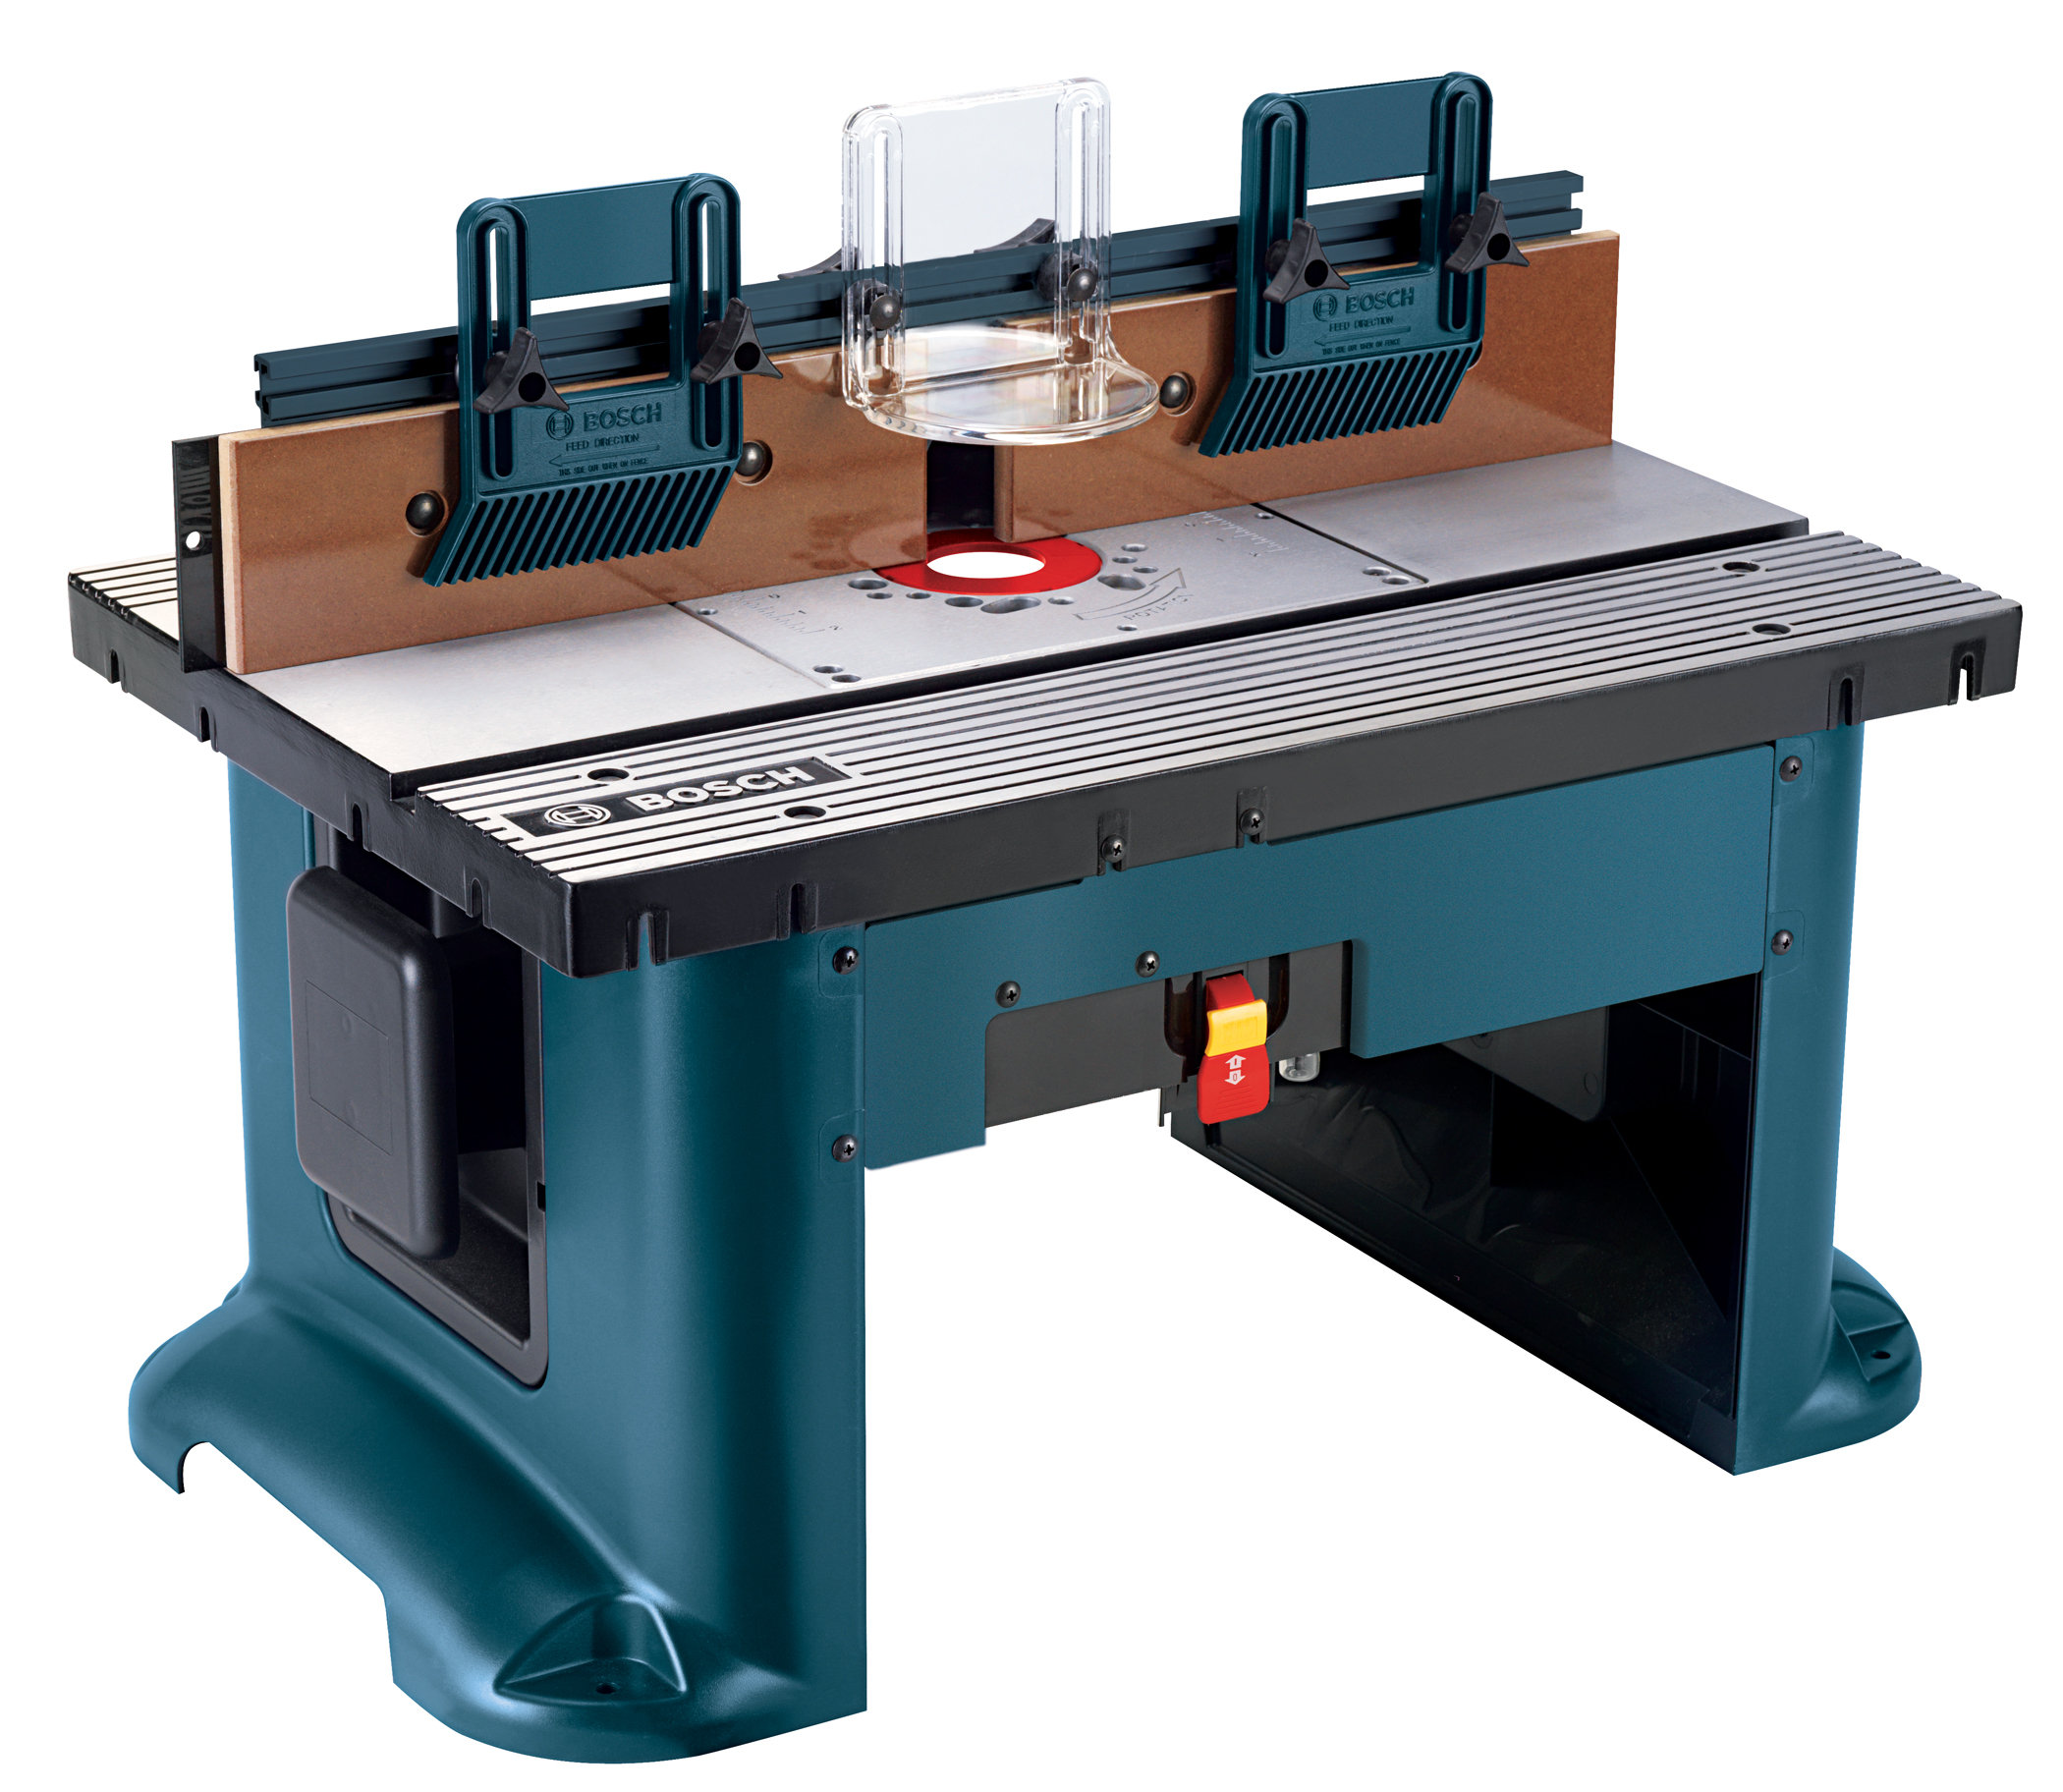 bosch ra1181 benchtop router table review